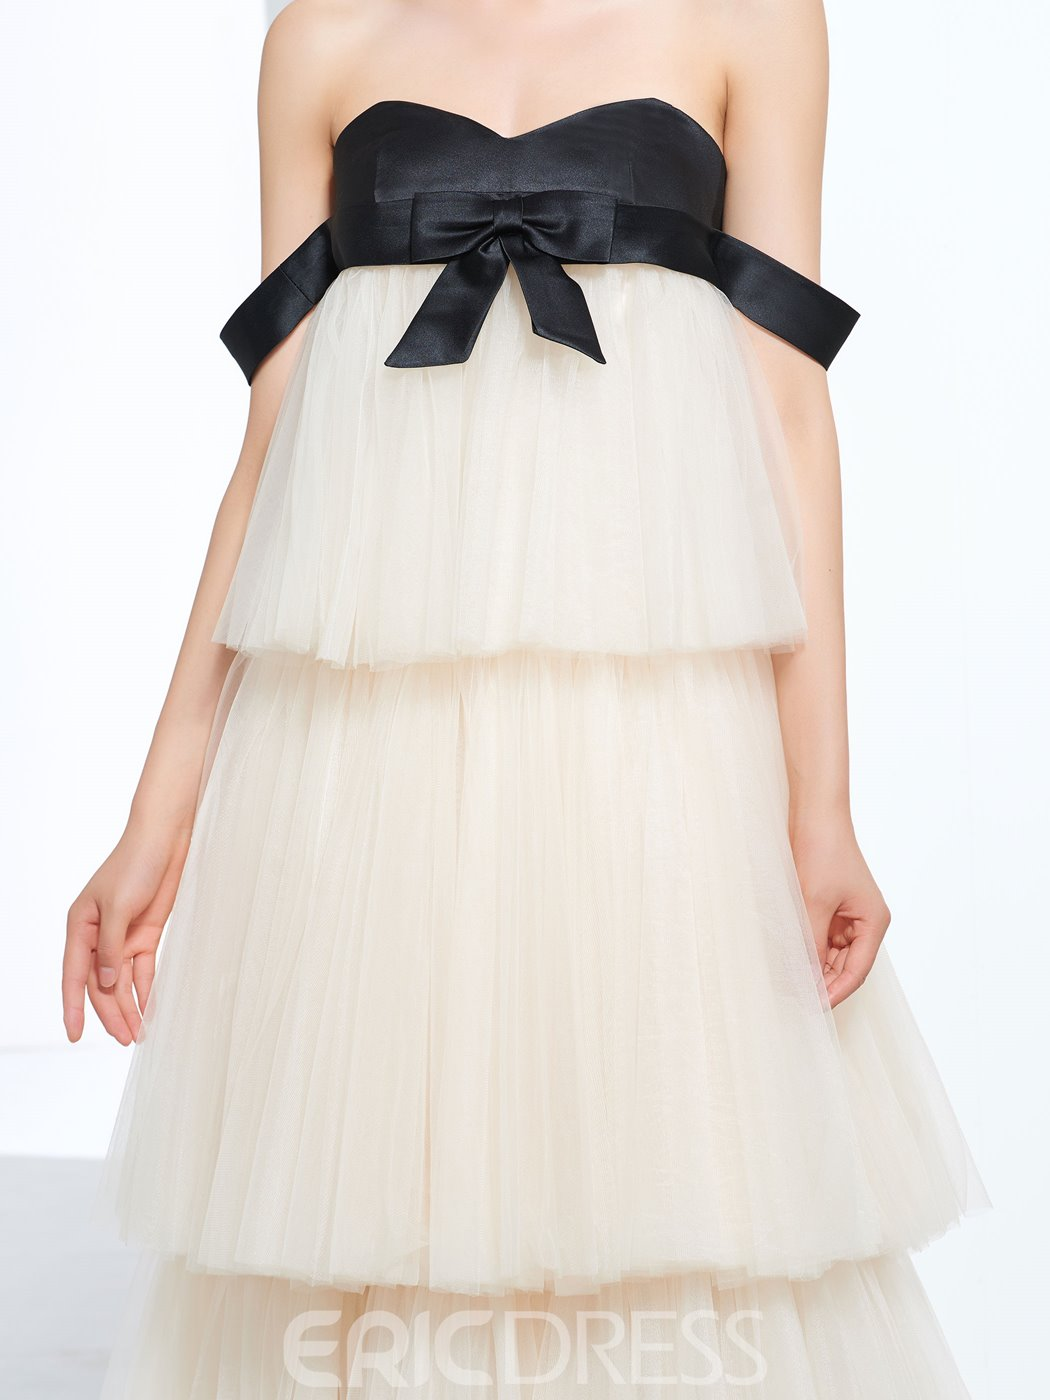 Ericdress A-Line Sweetheart Bowknot Tiered Floor-Length Prom Dress